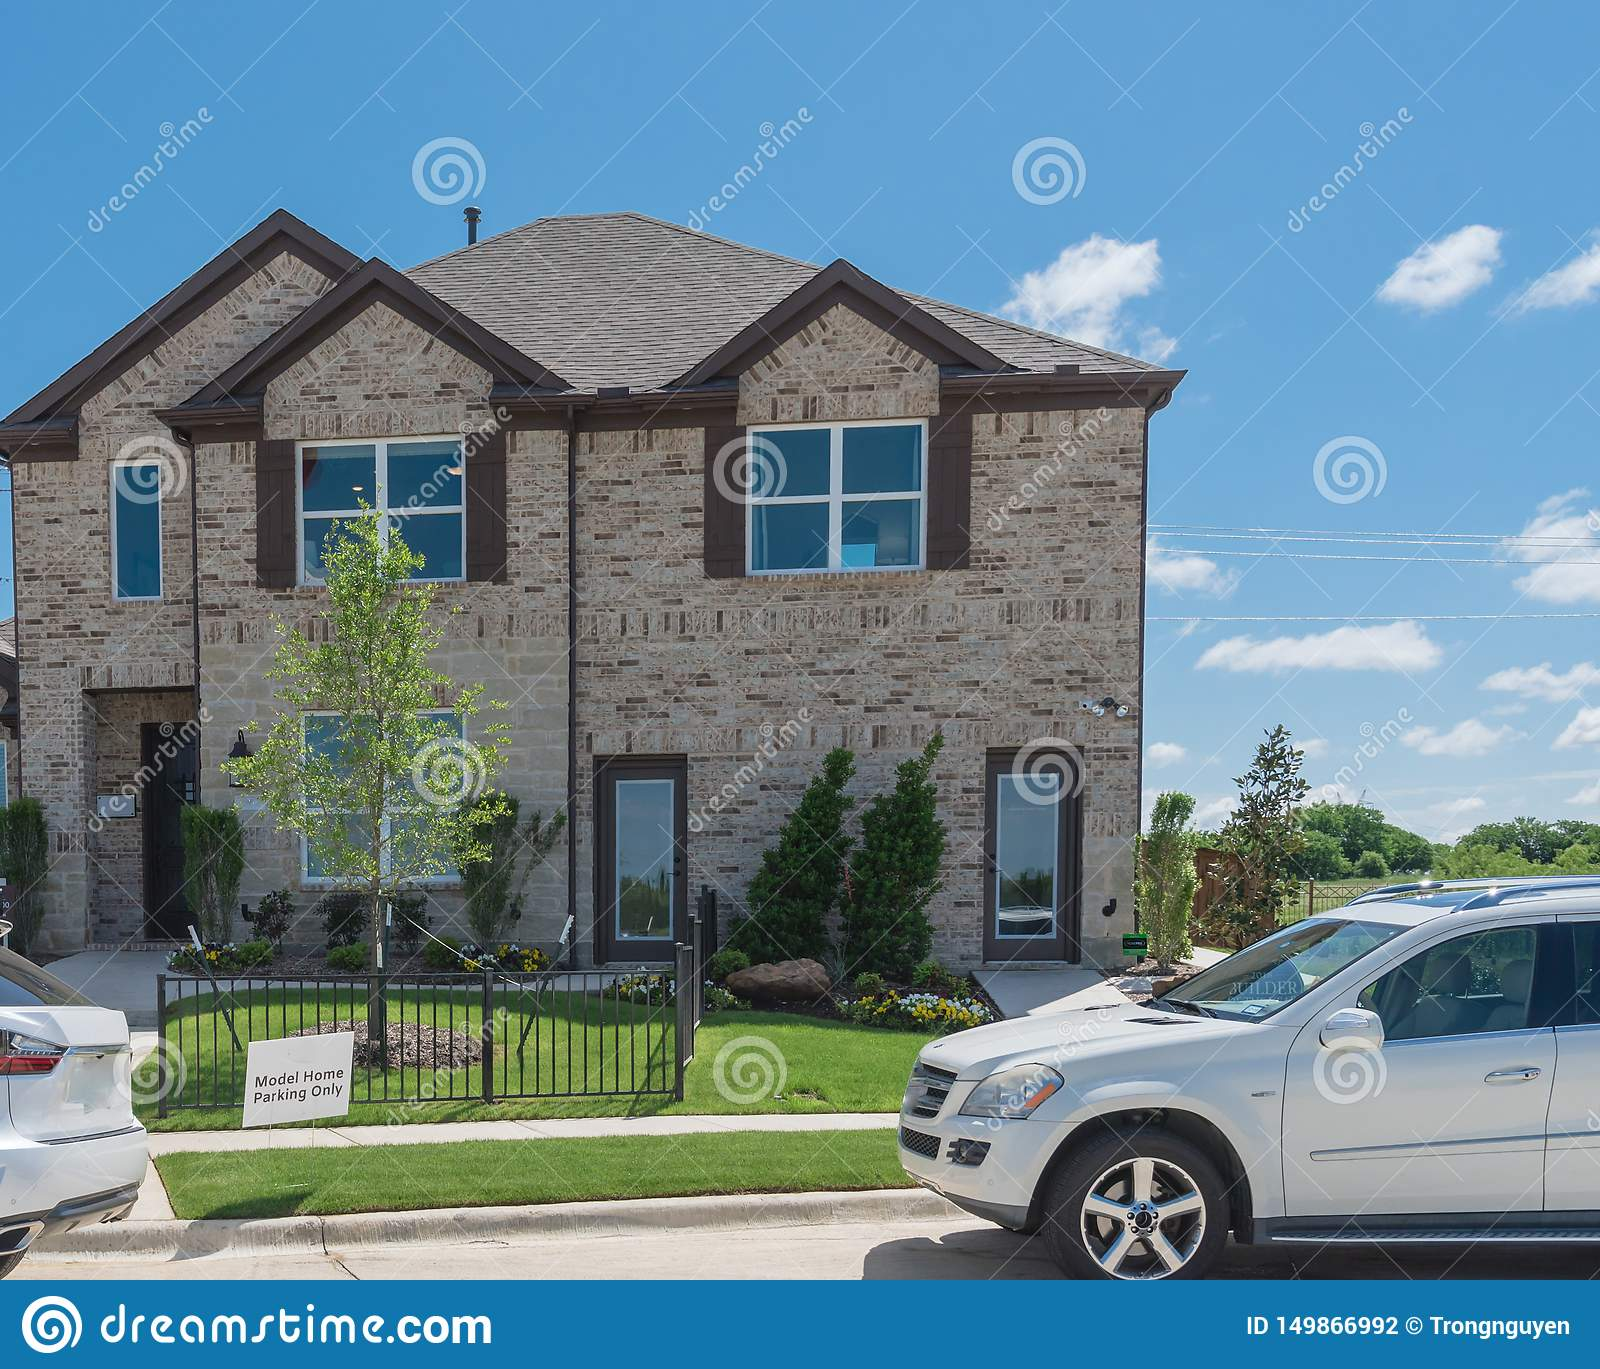 Fine Brand New Model House With Cars On Street Near Dallas Texas Download Free Architecture Designs Scobabritishbridgeorg